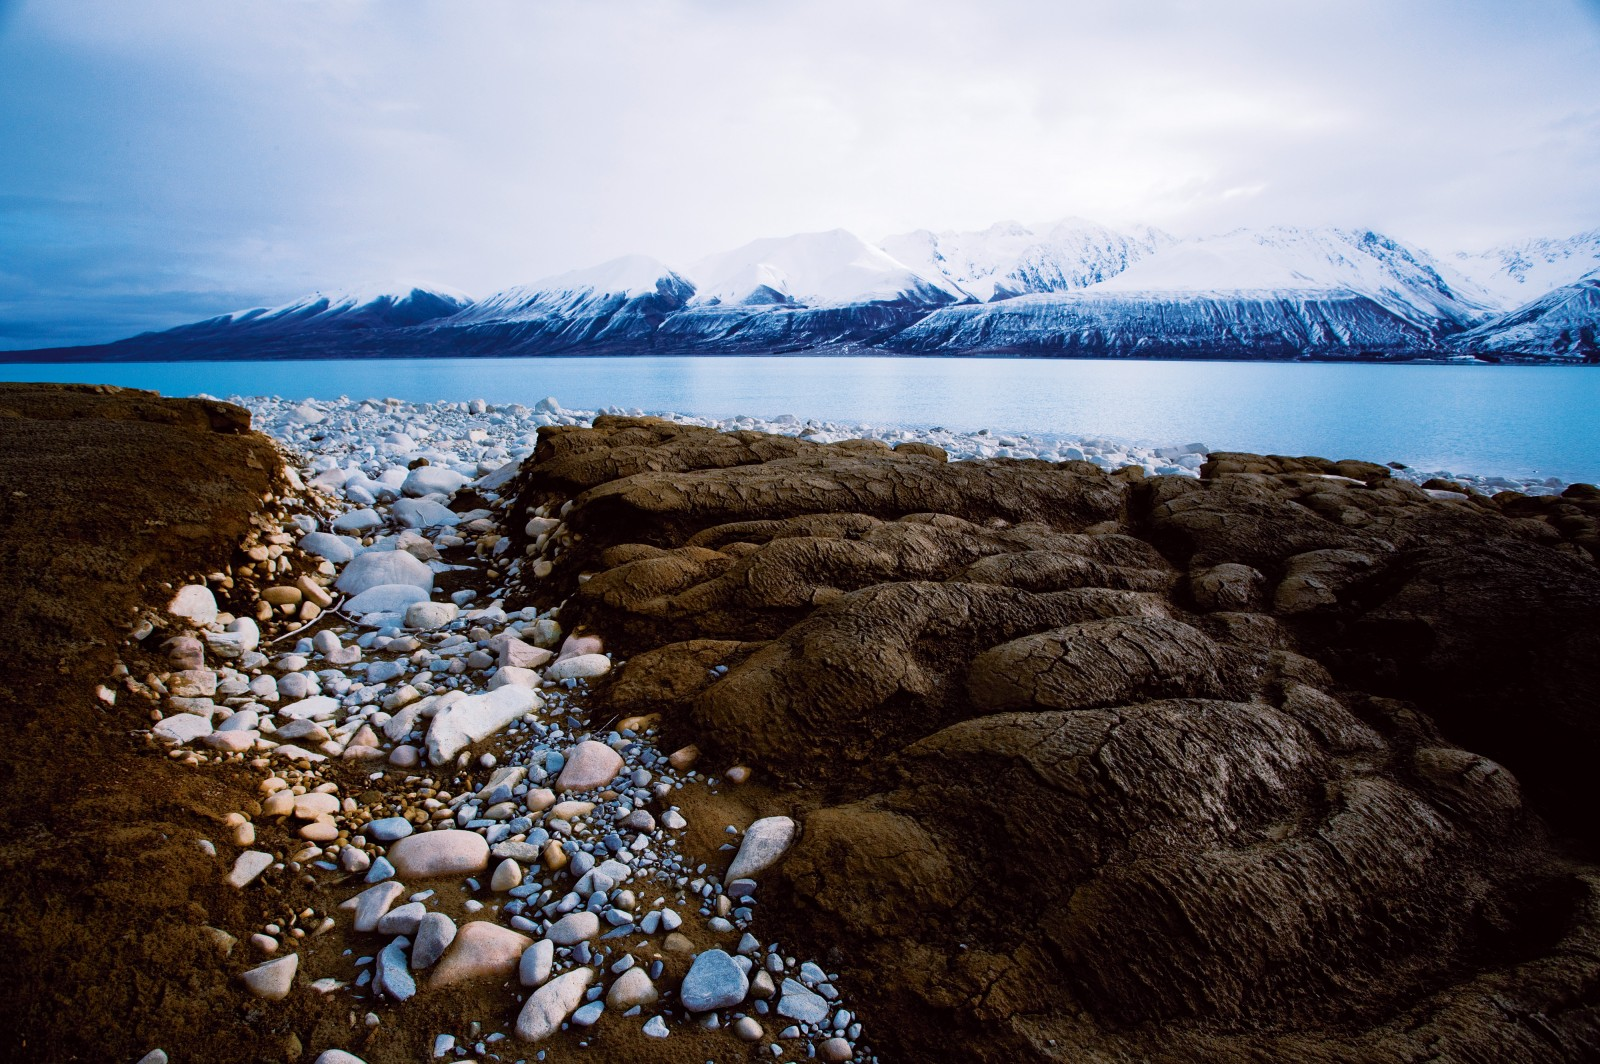 Between 1976 and 1979 the depth of Lake Pukaki was increased by 37 m—adding to a 9 m rise in the 1940s—to optimise its capacity for electricity generation. Environmental threats, such as shoreline erosion, were introduced by this construction and modified flow conditions have also affected river ecosystems in the area.